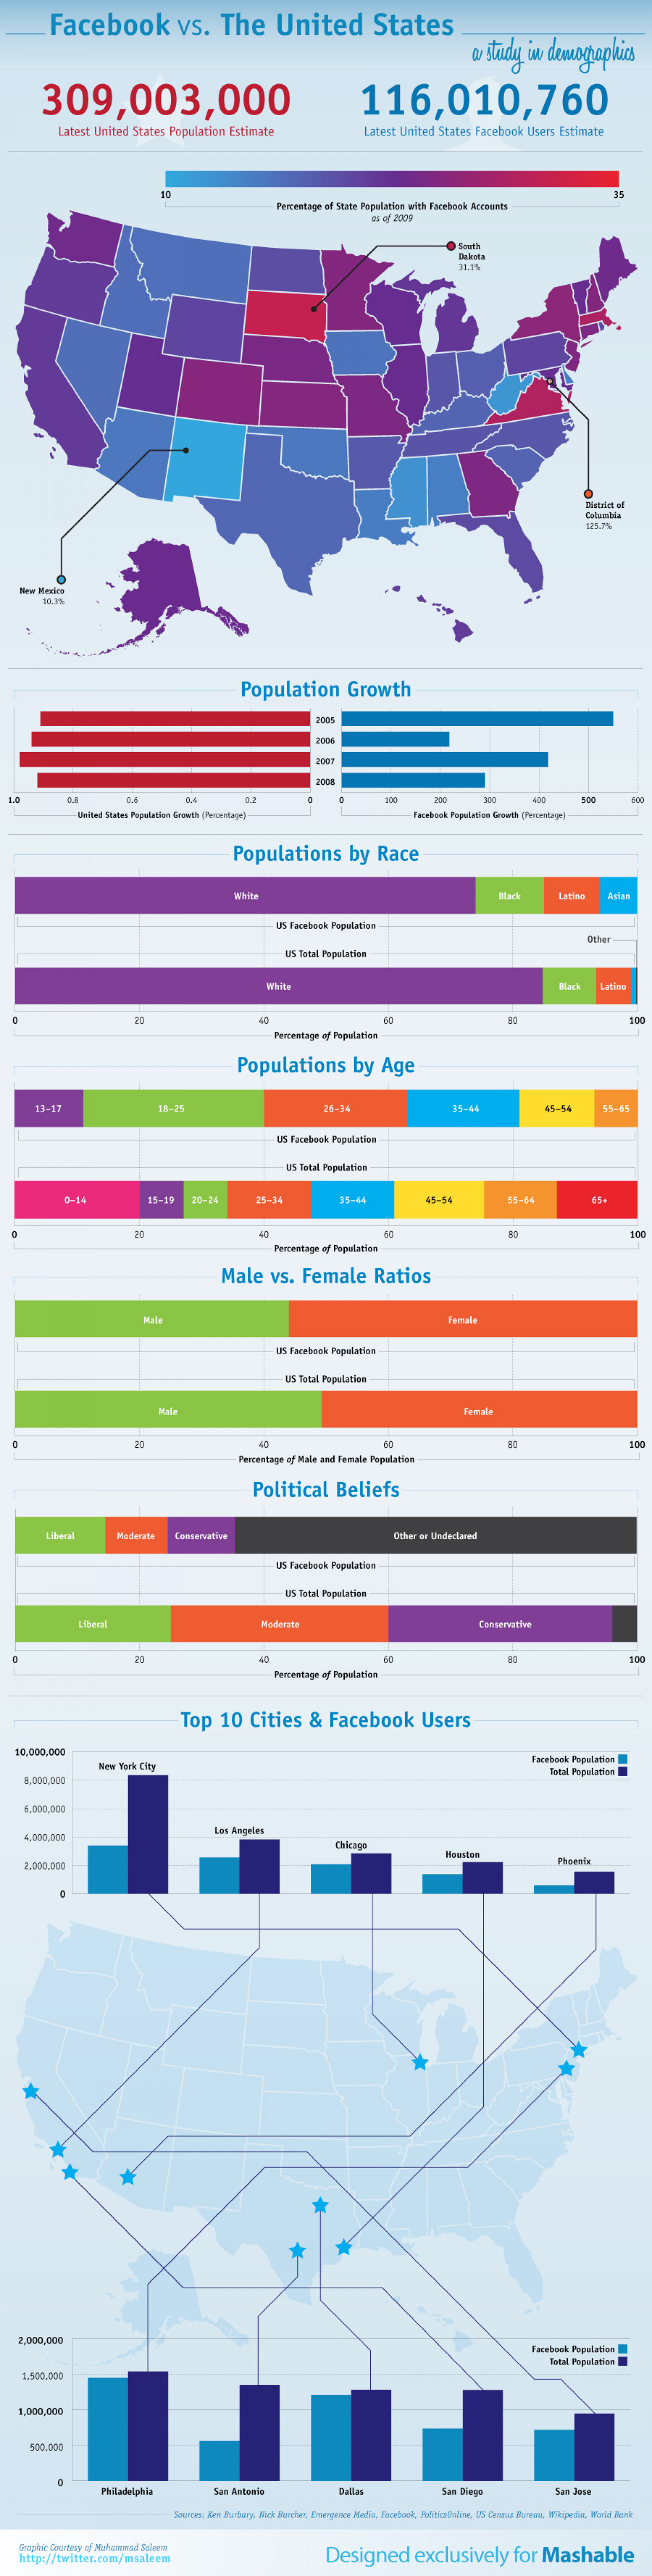 Facebook vs The United States Infographic